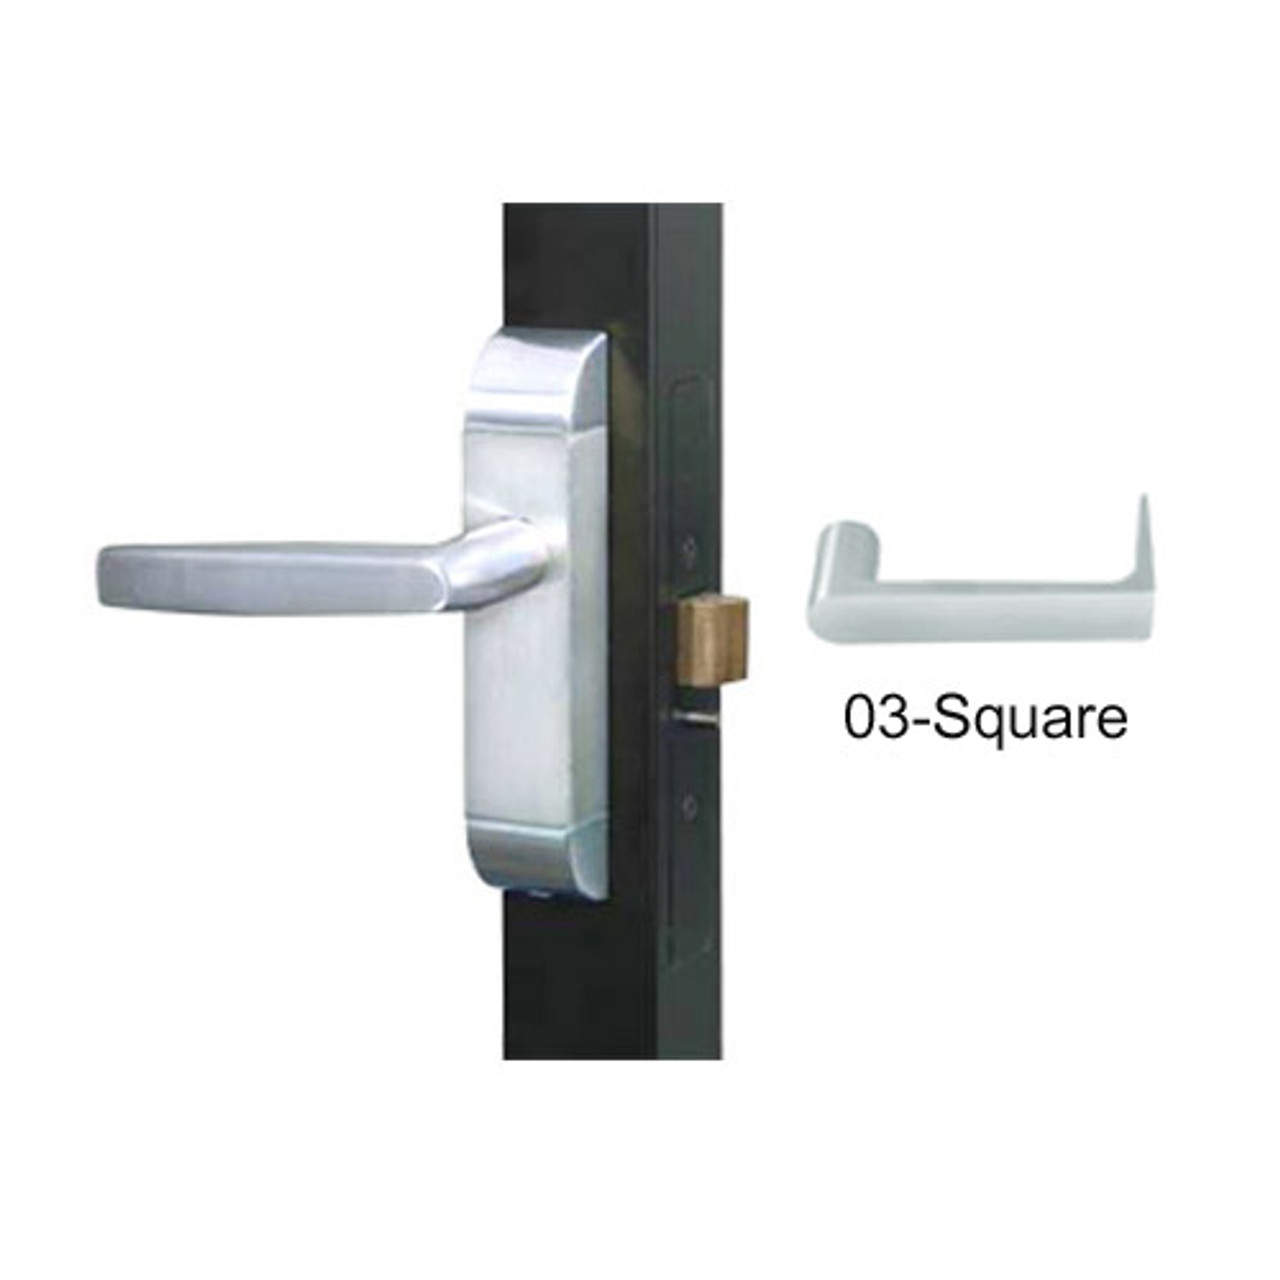 4600-03-541-US32 Adams Rite Heavy Duty Square Deadlatch Handles in Bright Stainless Finish